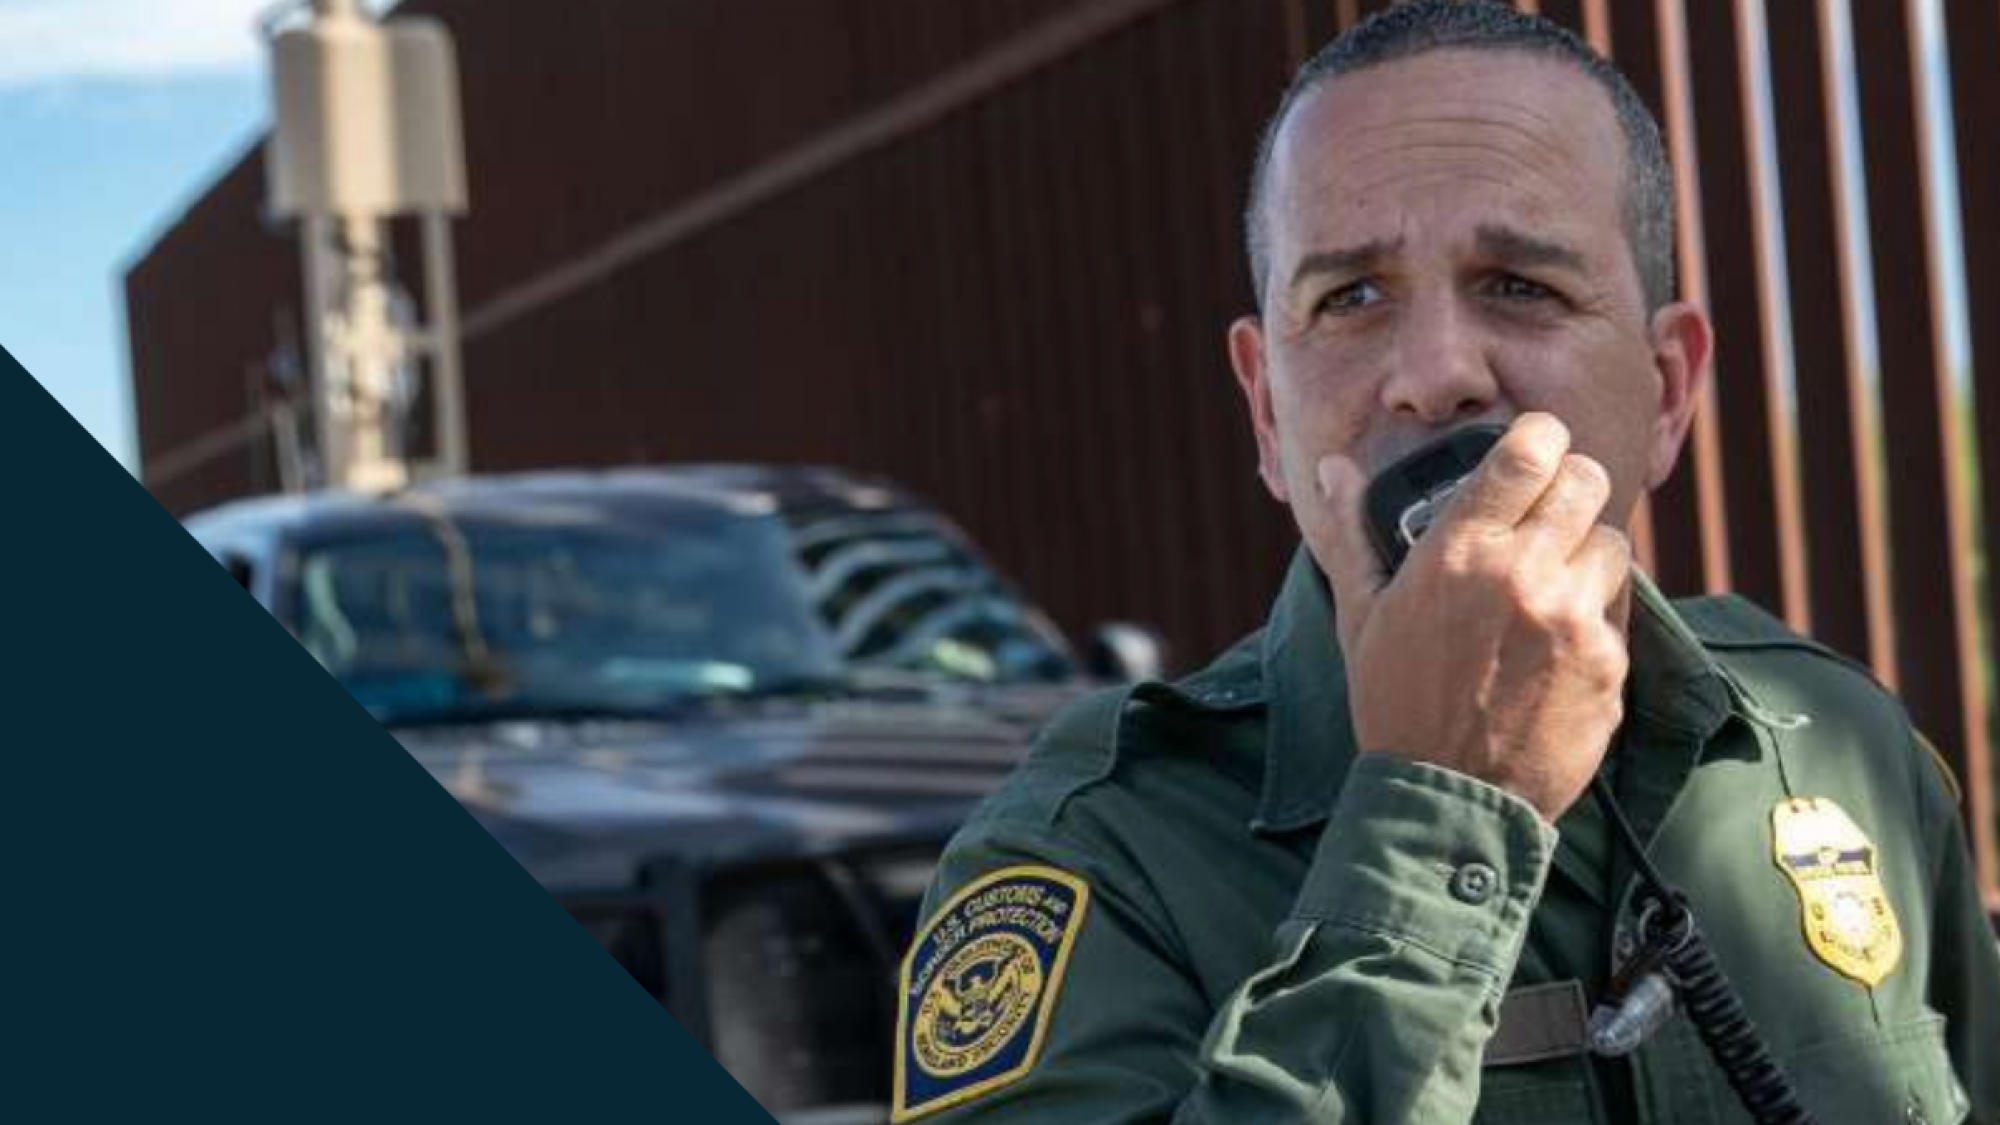 A Customs and Border Protection officer speaks into a radio in front of the wall at the US-Mexico border